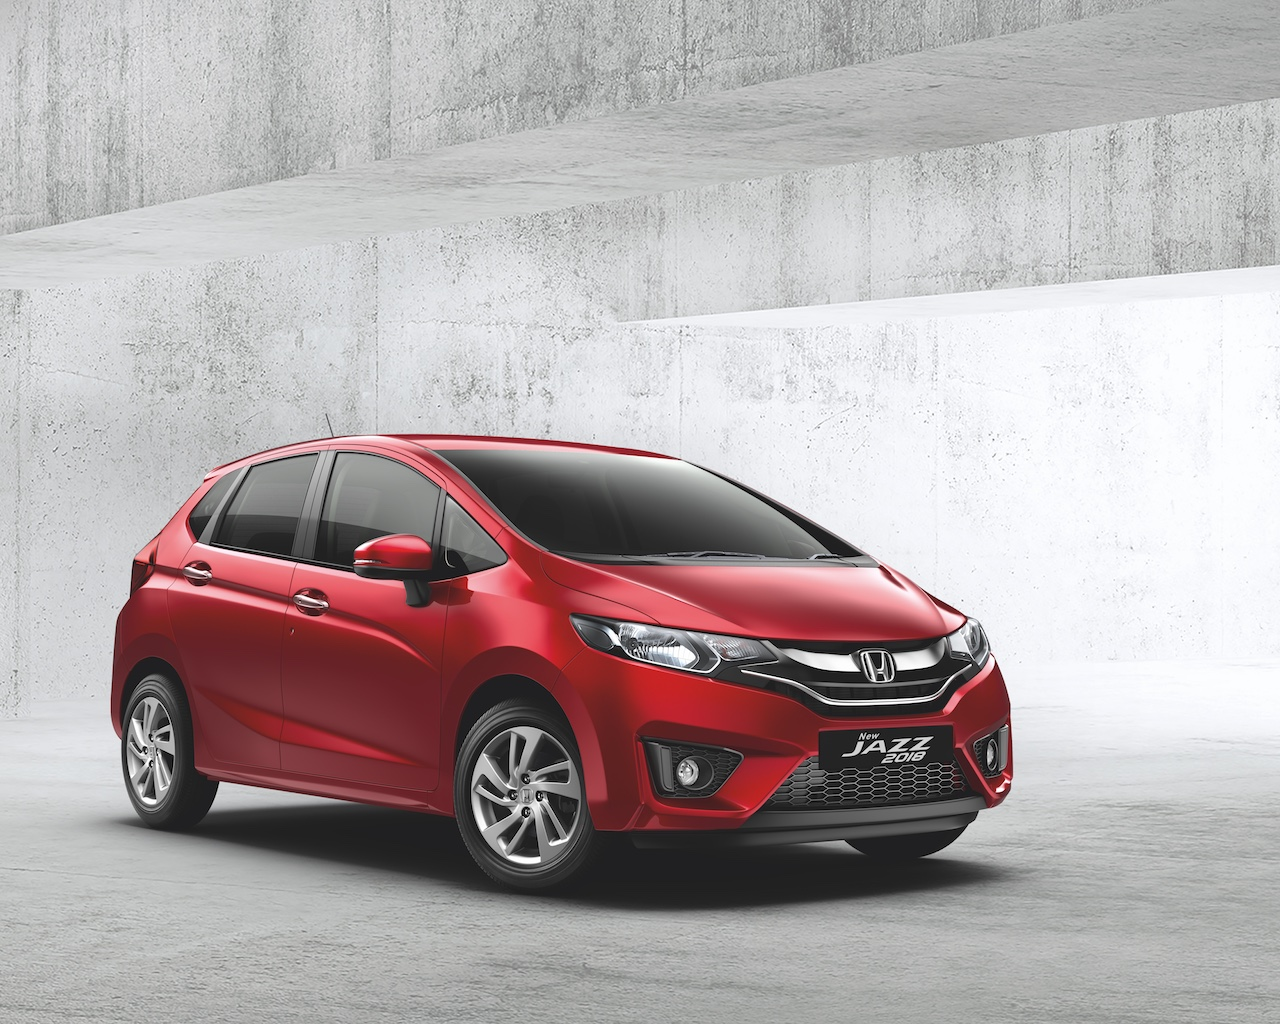 2018 Honda Jazz Facelift Launched in India 6